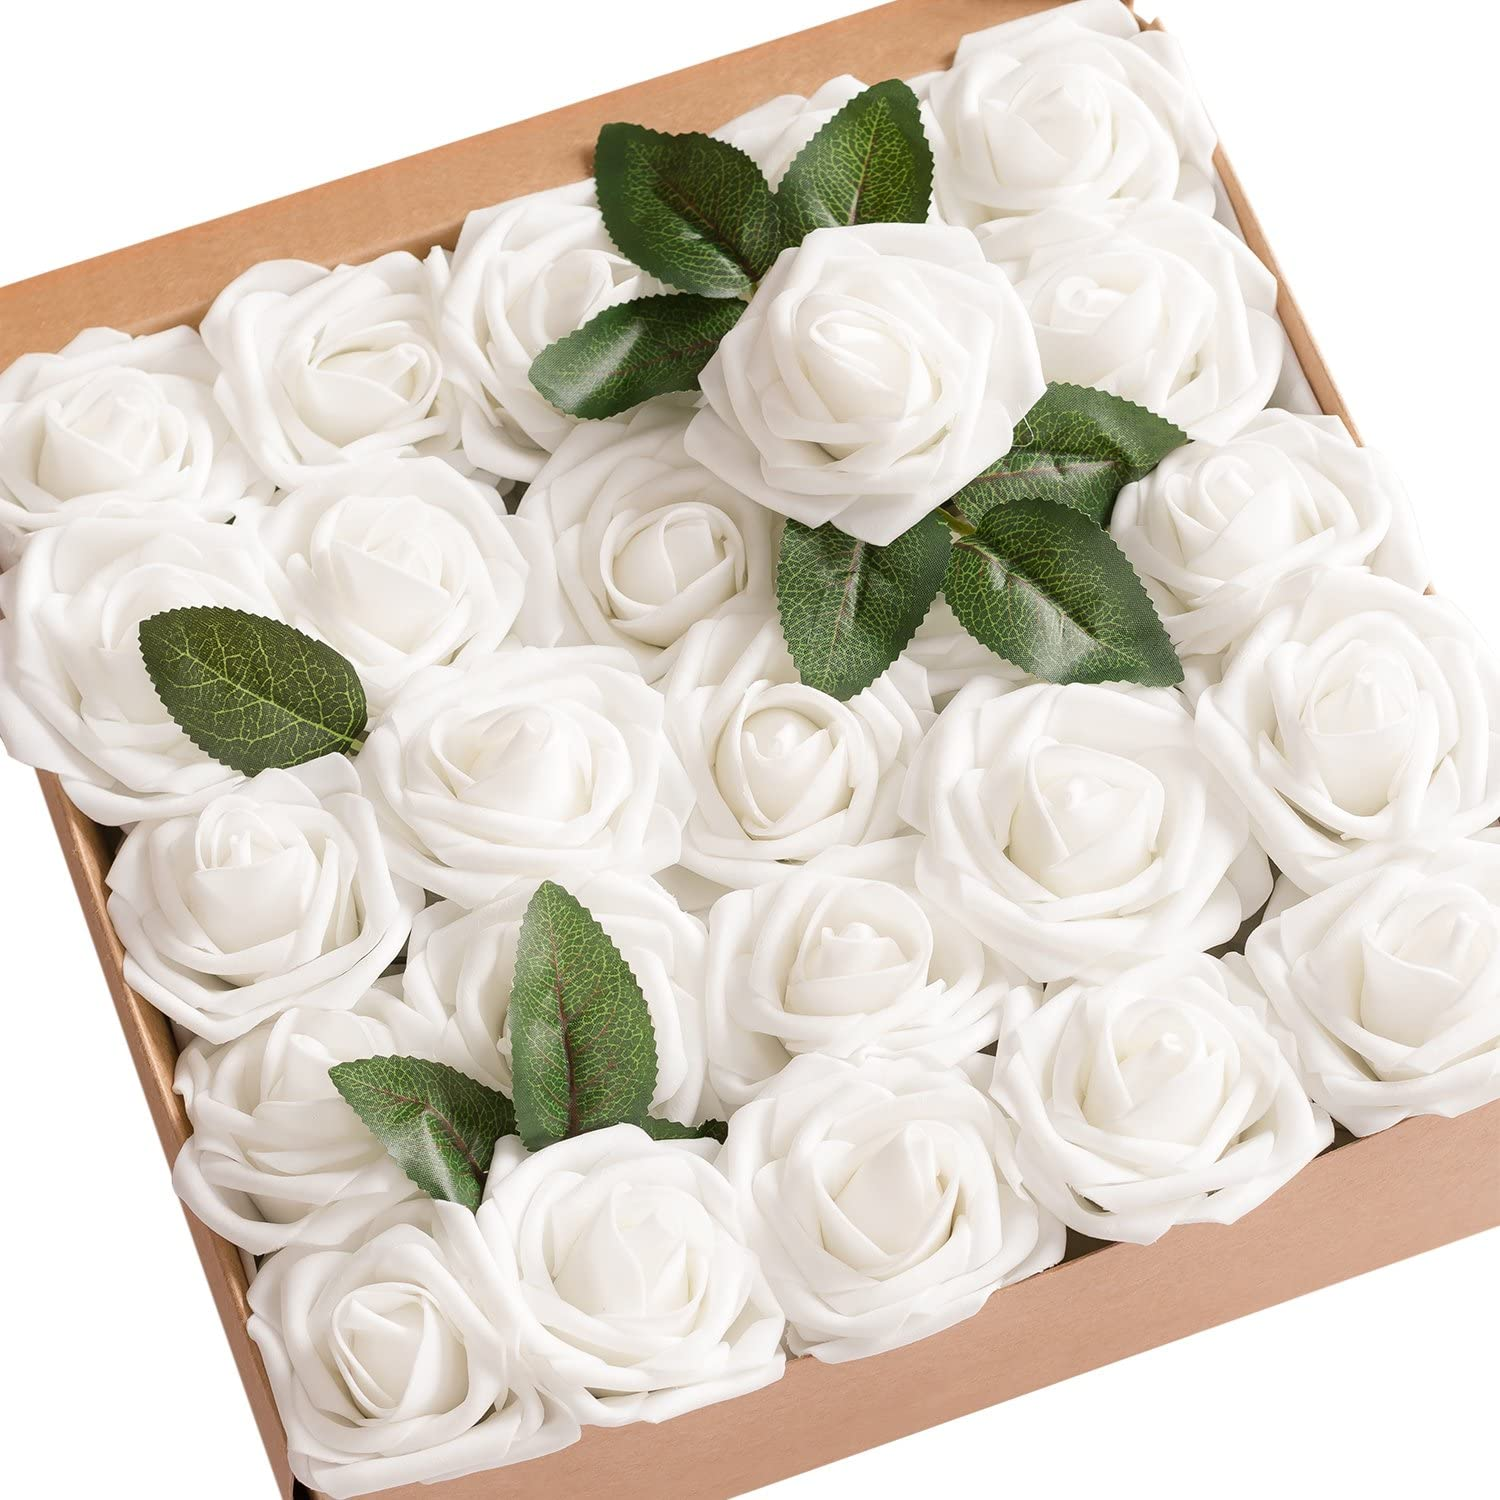 Ling's moment Artificial Flowers 50pcs Real Looking White Fake Roses w/Stem for DIY Wedding Bouquets Centerpieces Bridal Shower Party Home Decorations